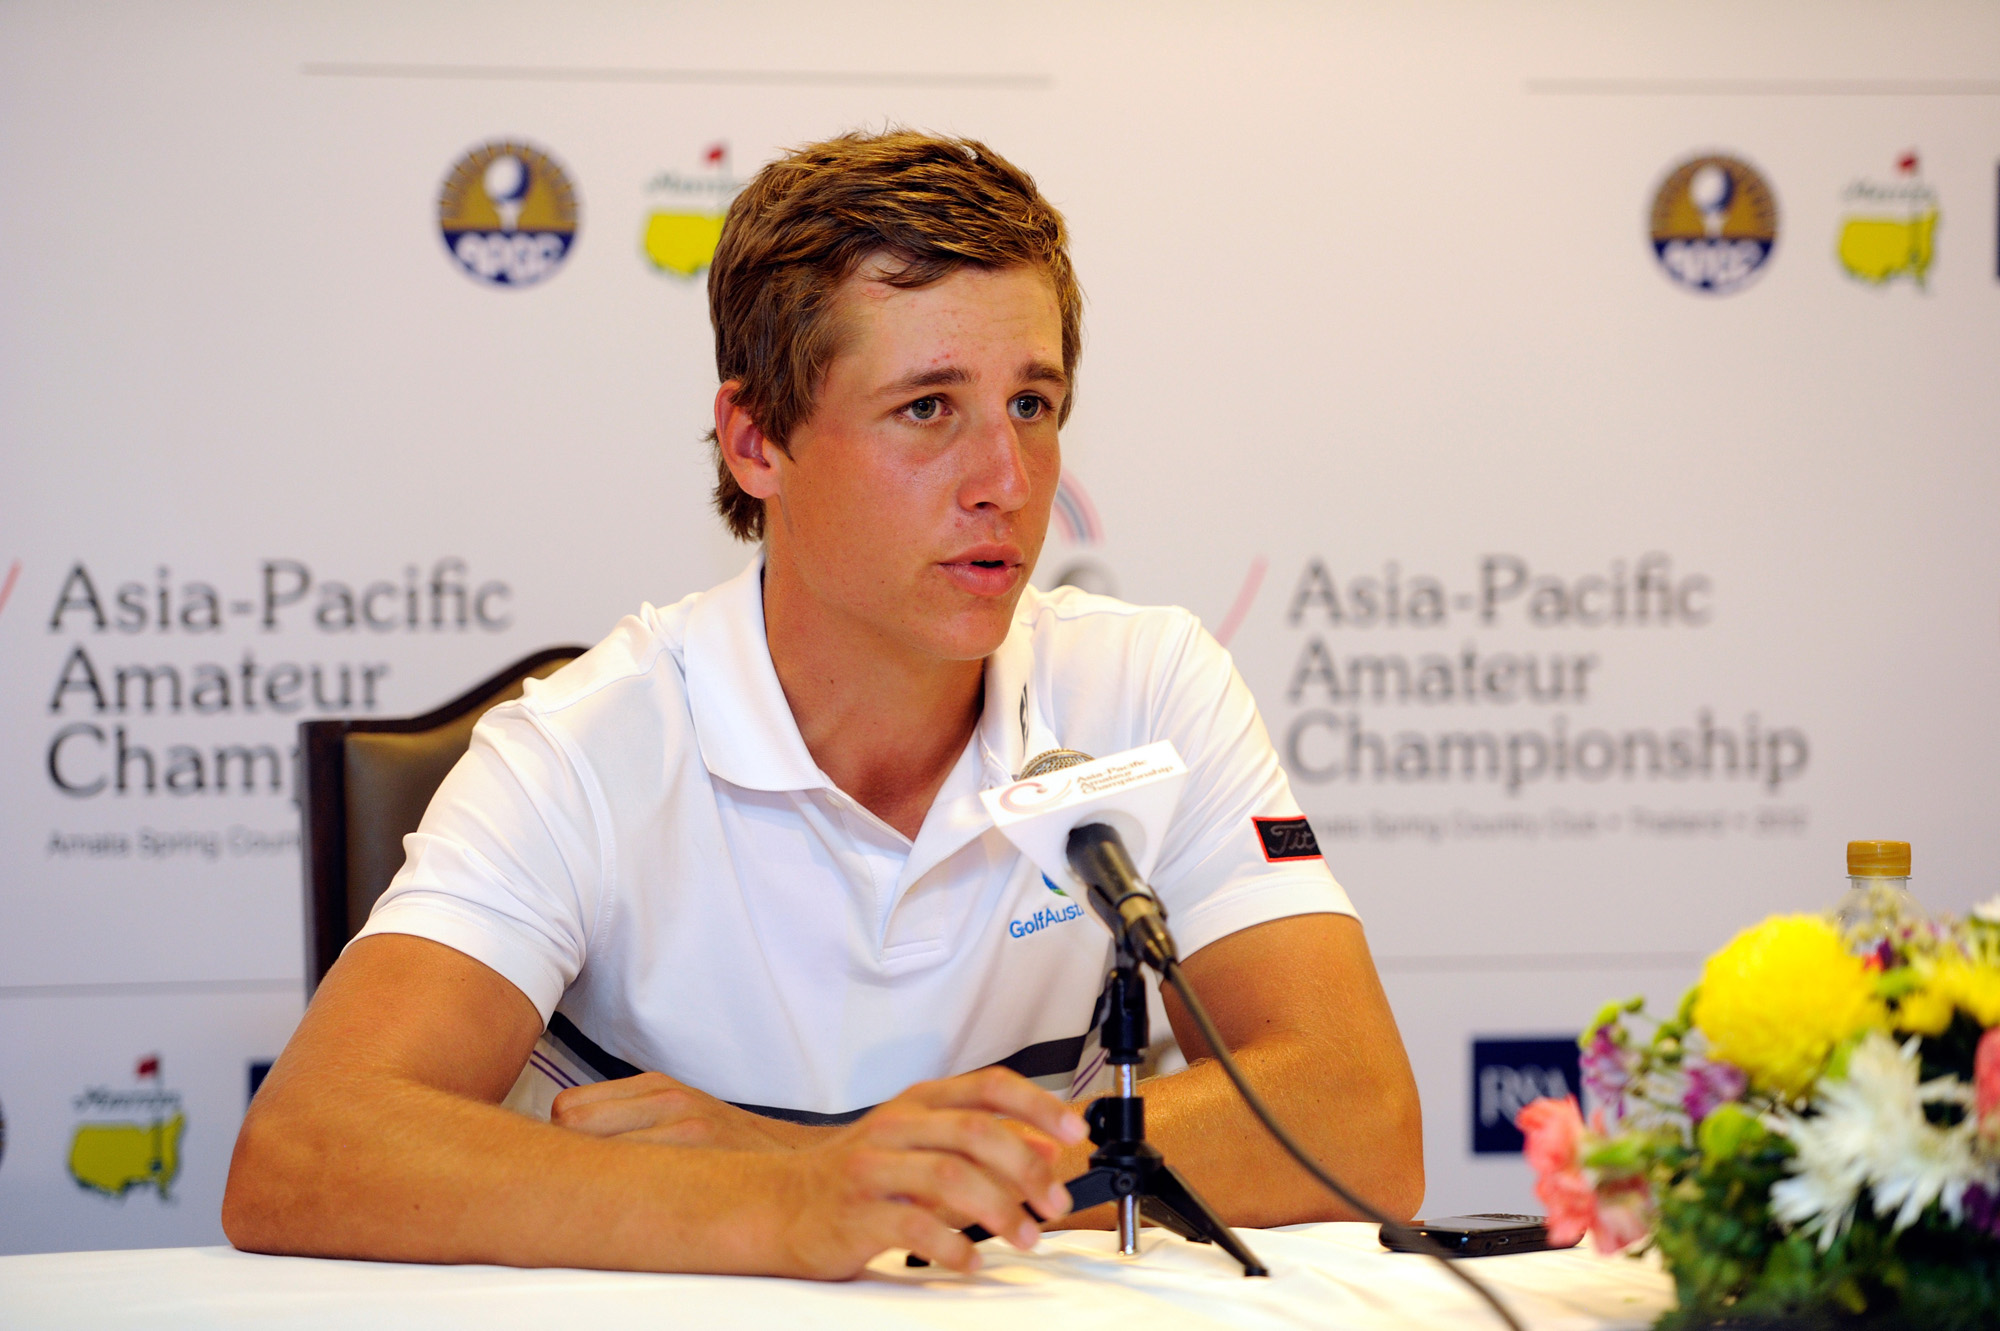 CHON BURI -THAILAND - NOVEMBER 2: Oliver Goss of Australia pictured during day 2 on November 2, 2012 at Amata Spring Country Club, Chon Buri, Thailand, The Asia-Pacific Amateur Championship event is staged from November 1-4, 2012. Photo by David Paul Morris/AAC